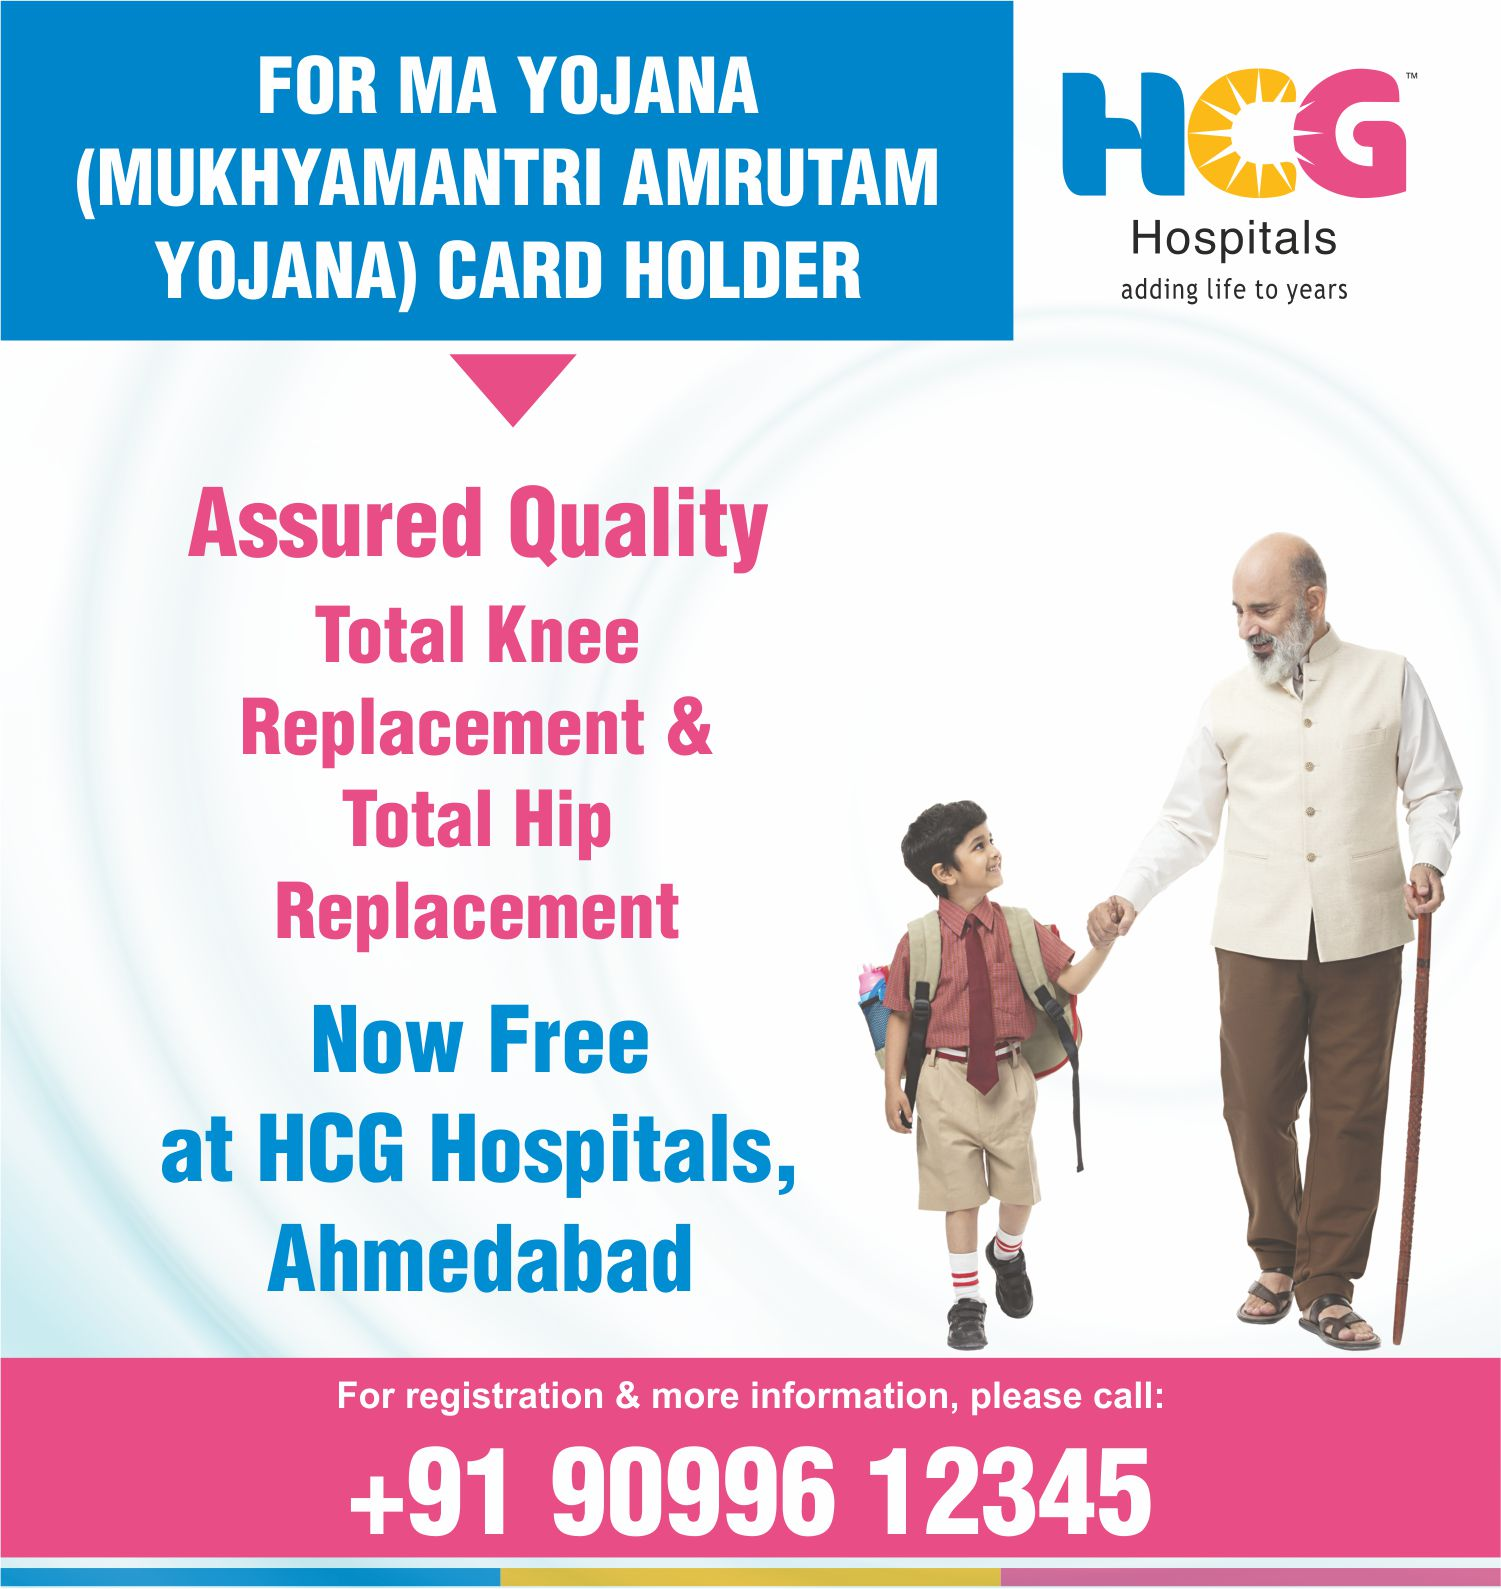 Total hip and knee replacement is free for Ma Yojana card holders